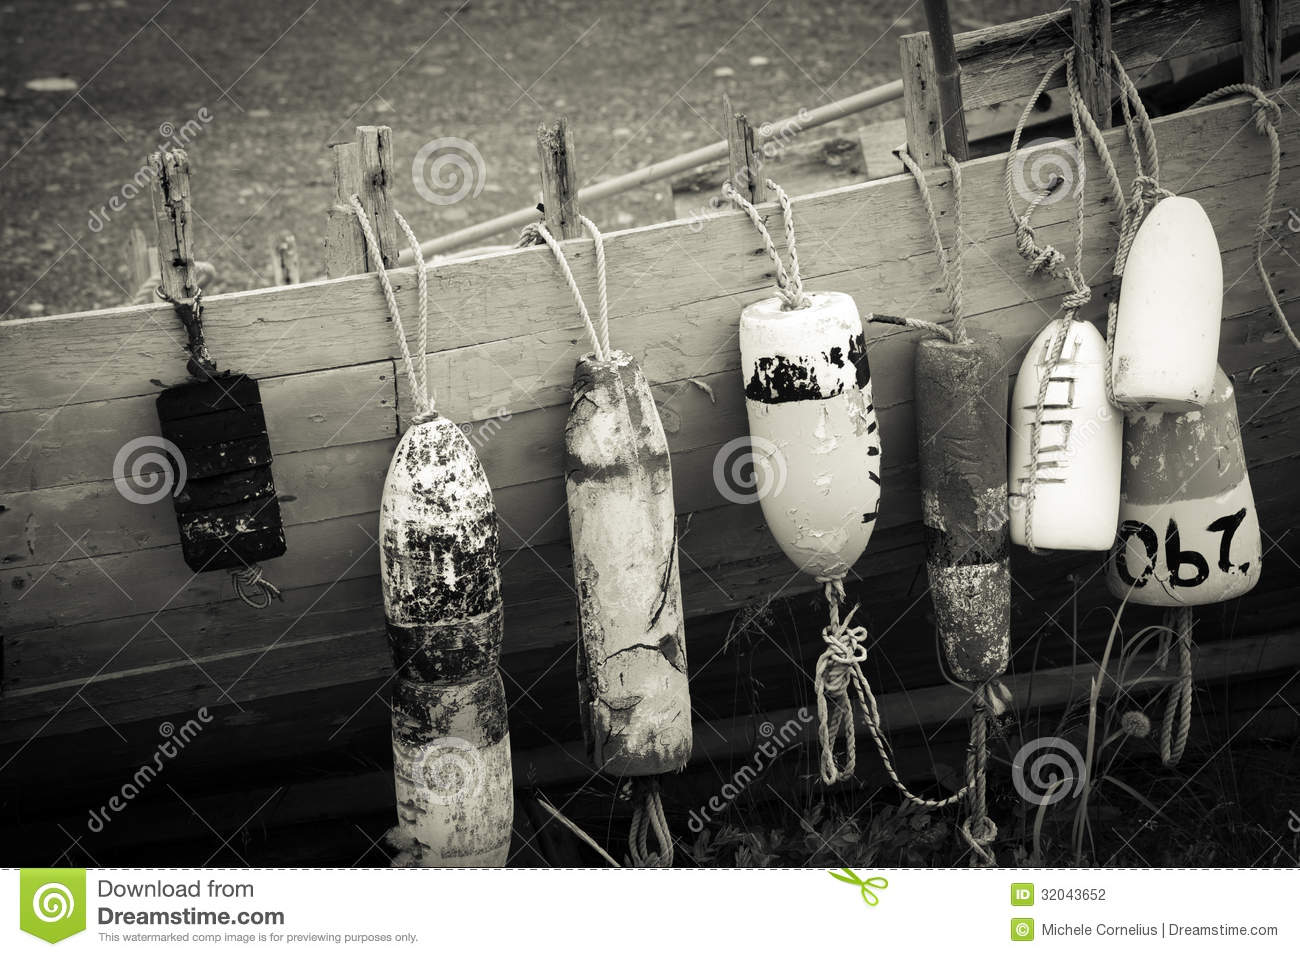 Vintage Boat Buoys And Fenders By The Sea Stock Photo - Image of rope, boating: 32043652